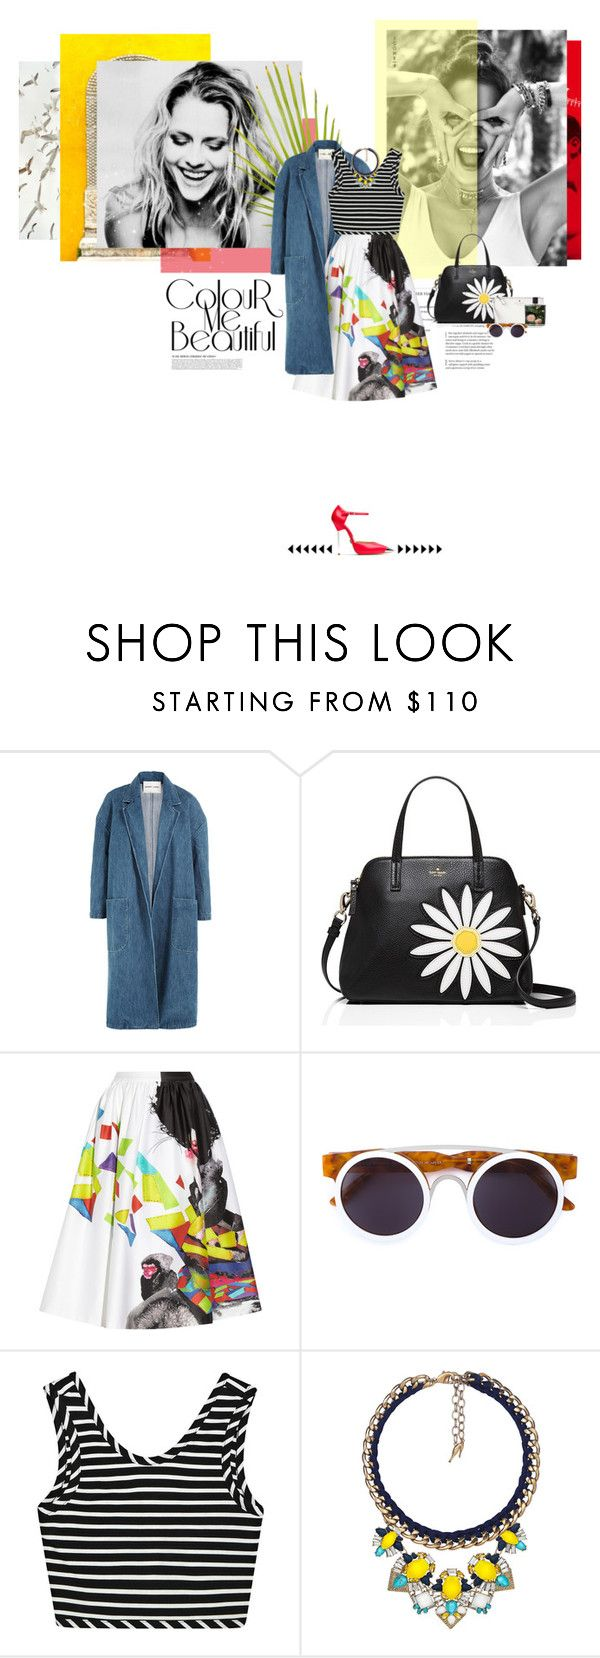 """amarillo"" by camimany ❤ liked on Polyvore featuring Sandy Liang, Kate Spade, Alice + Olivia, Smoke x Mirrors, Michael Kors, Chloe + Isabel and Nest Fragrances"